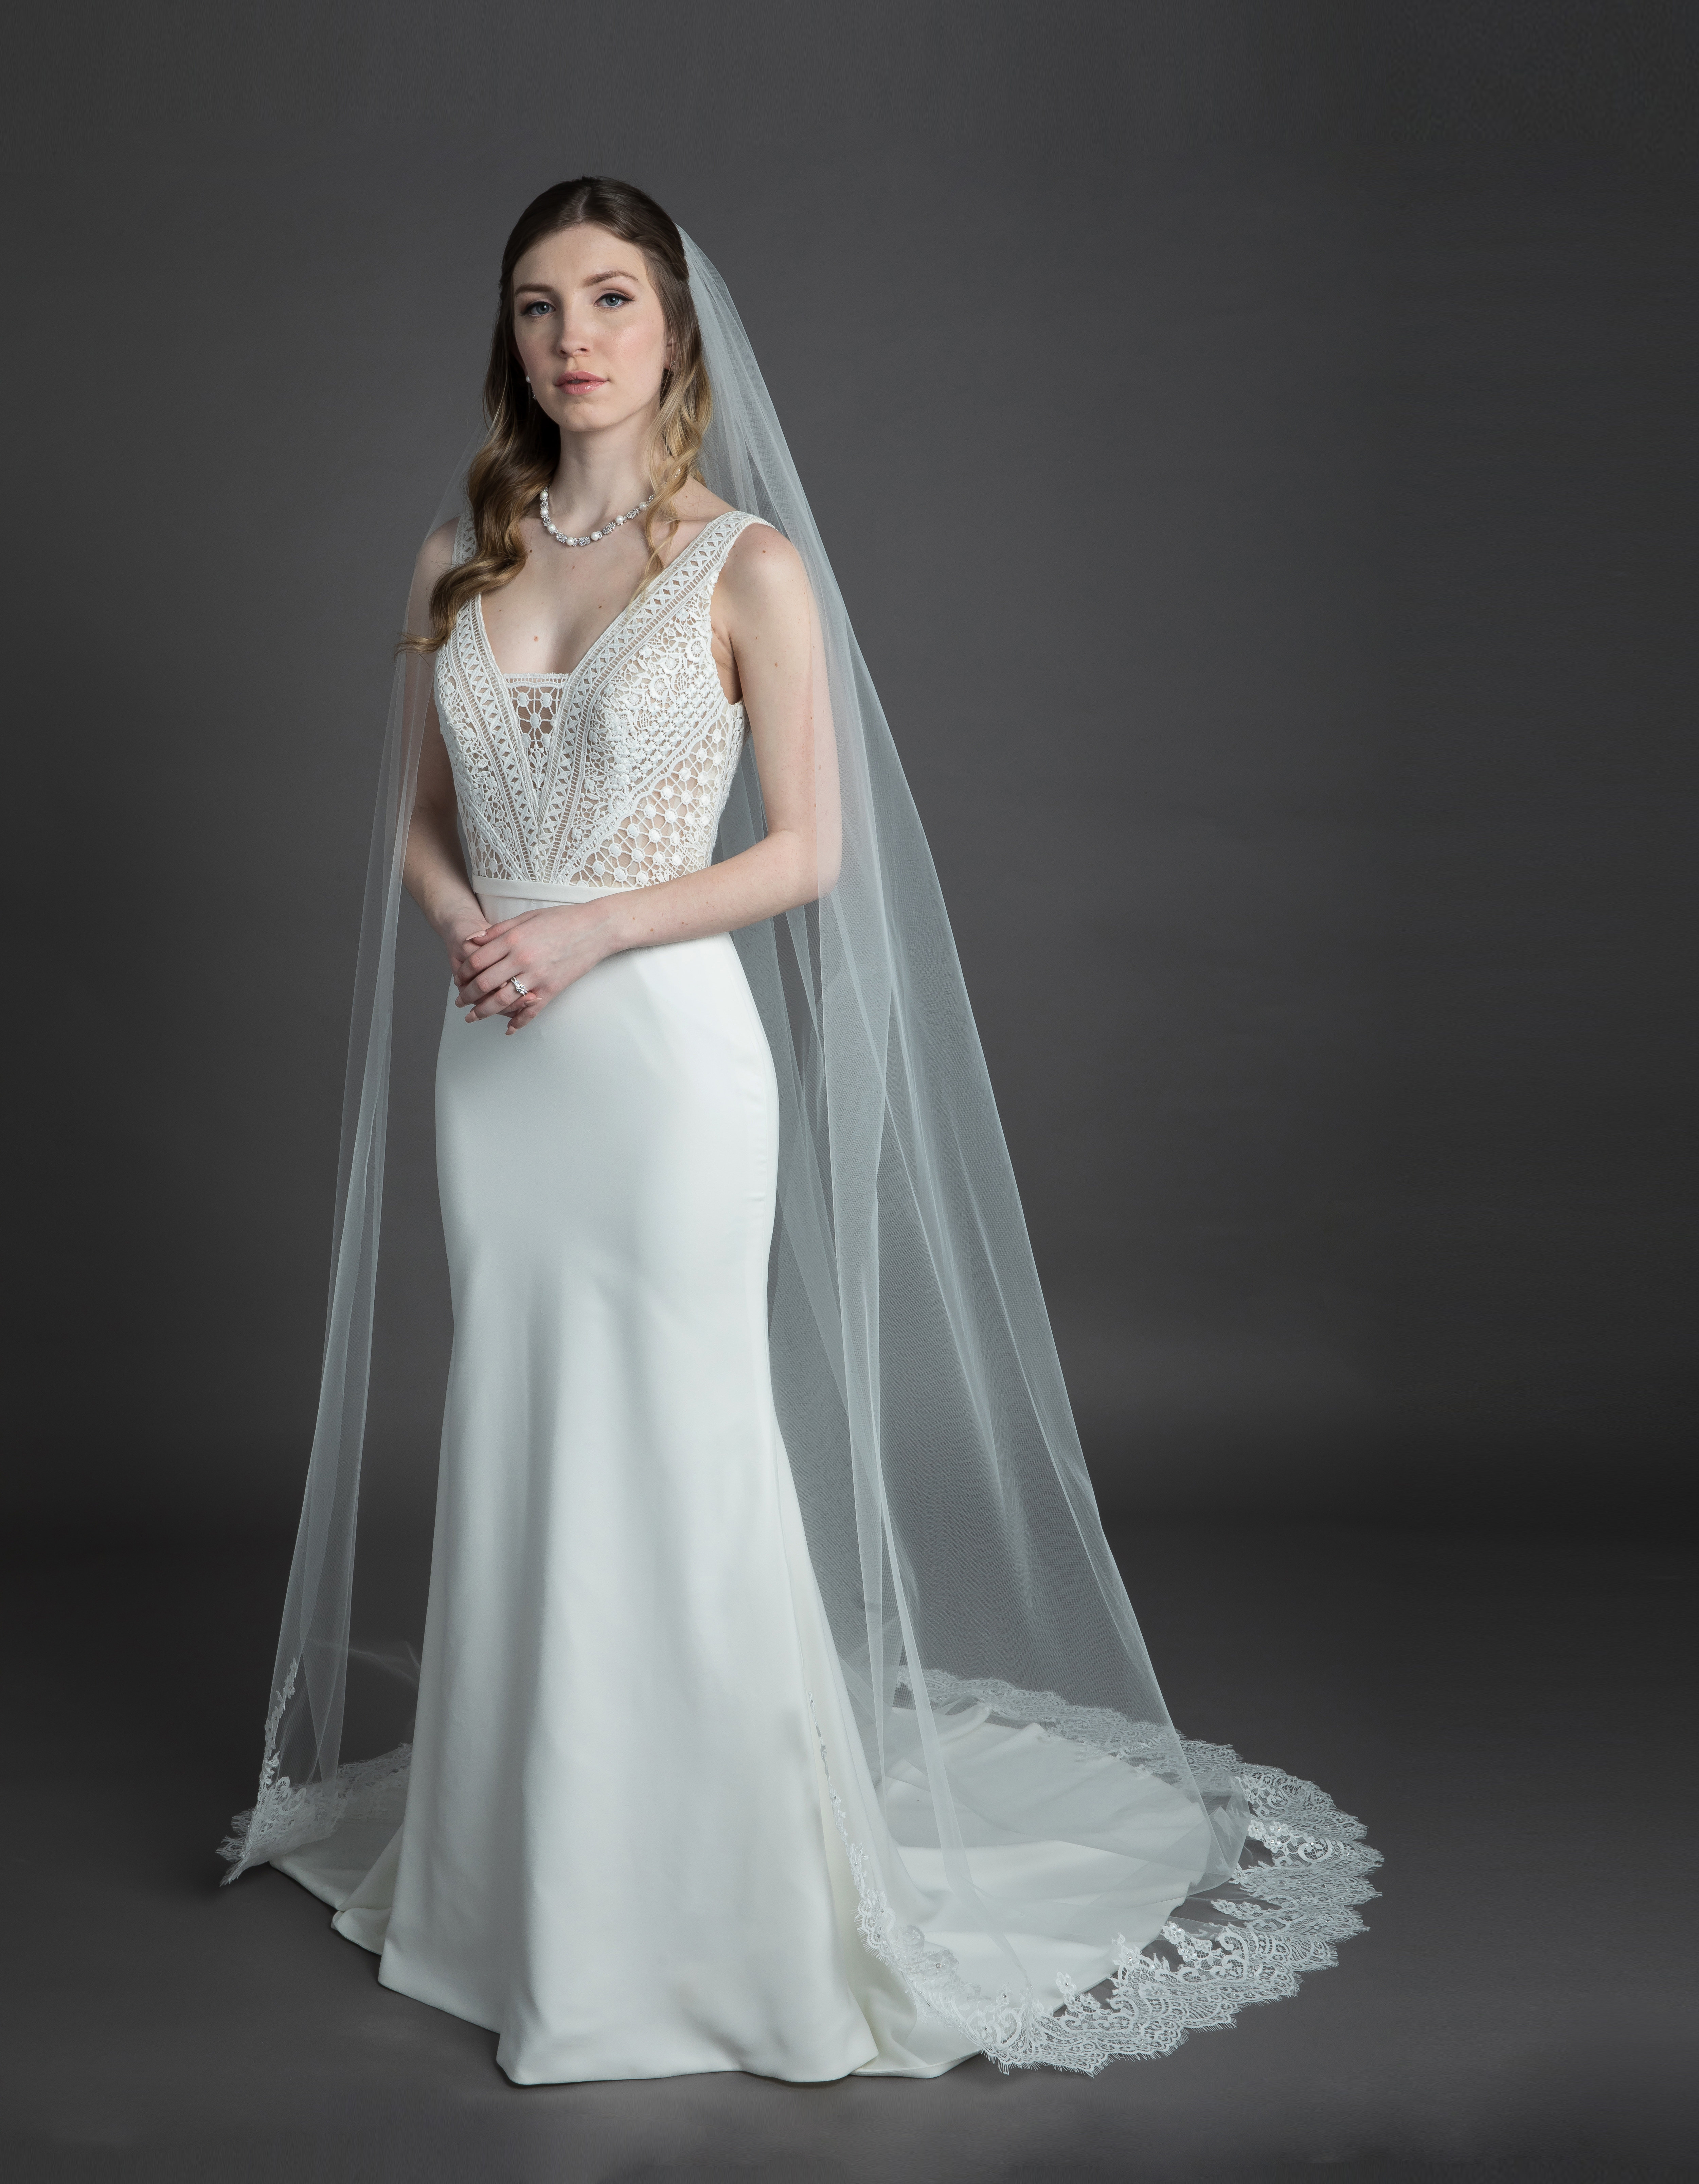 Bridal Classics Marquise Veil Collection MV-2480